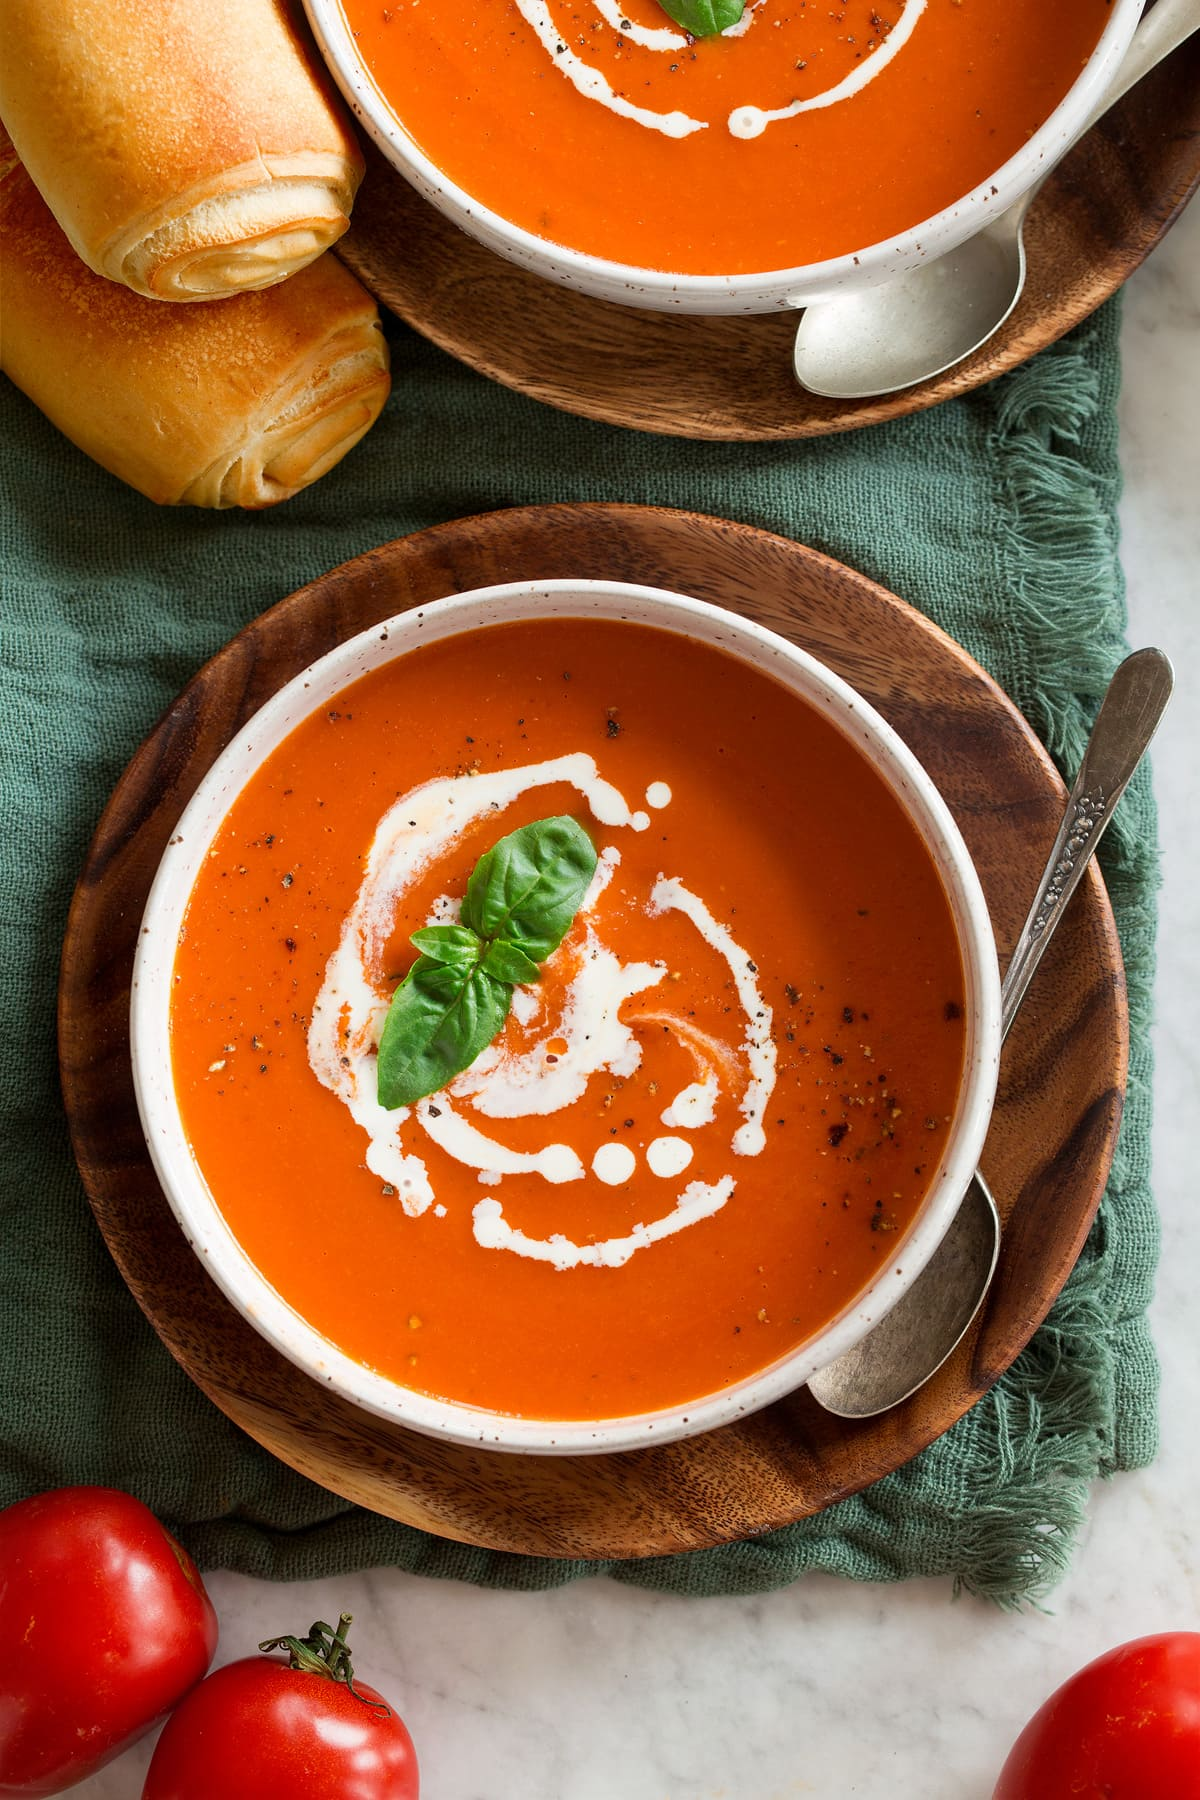 Overhead image of serving of tomato soup swirled with heavy cream.